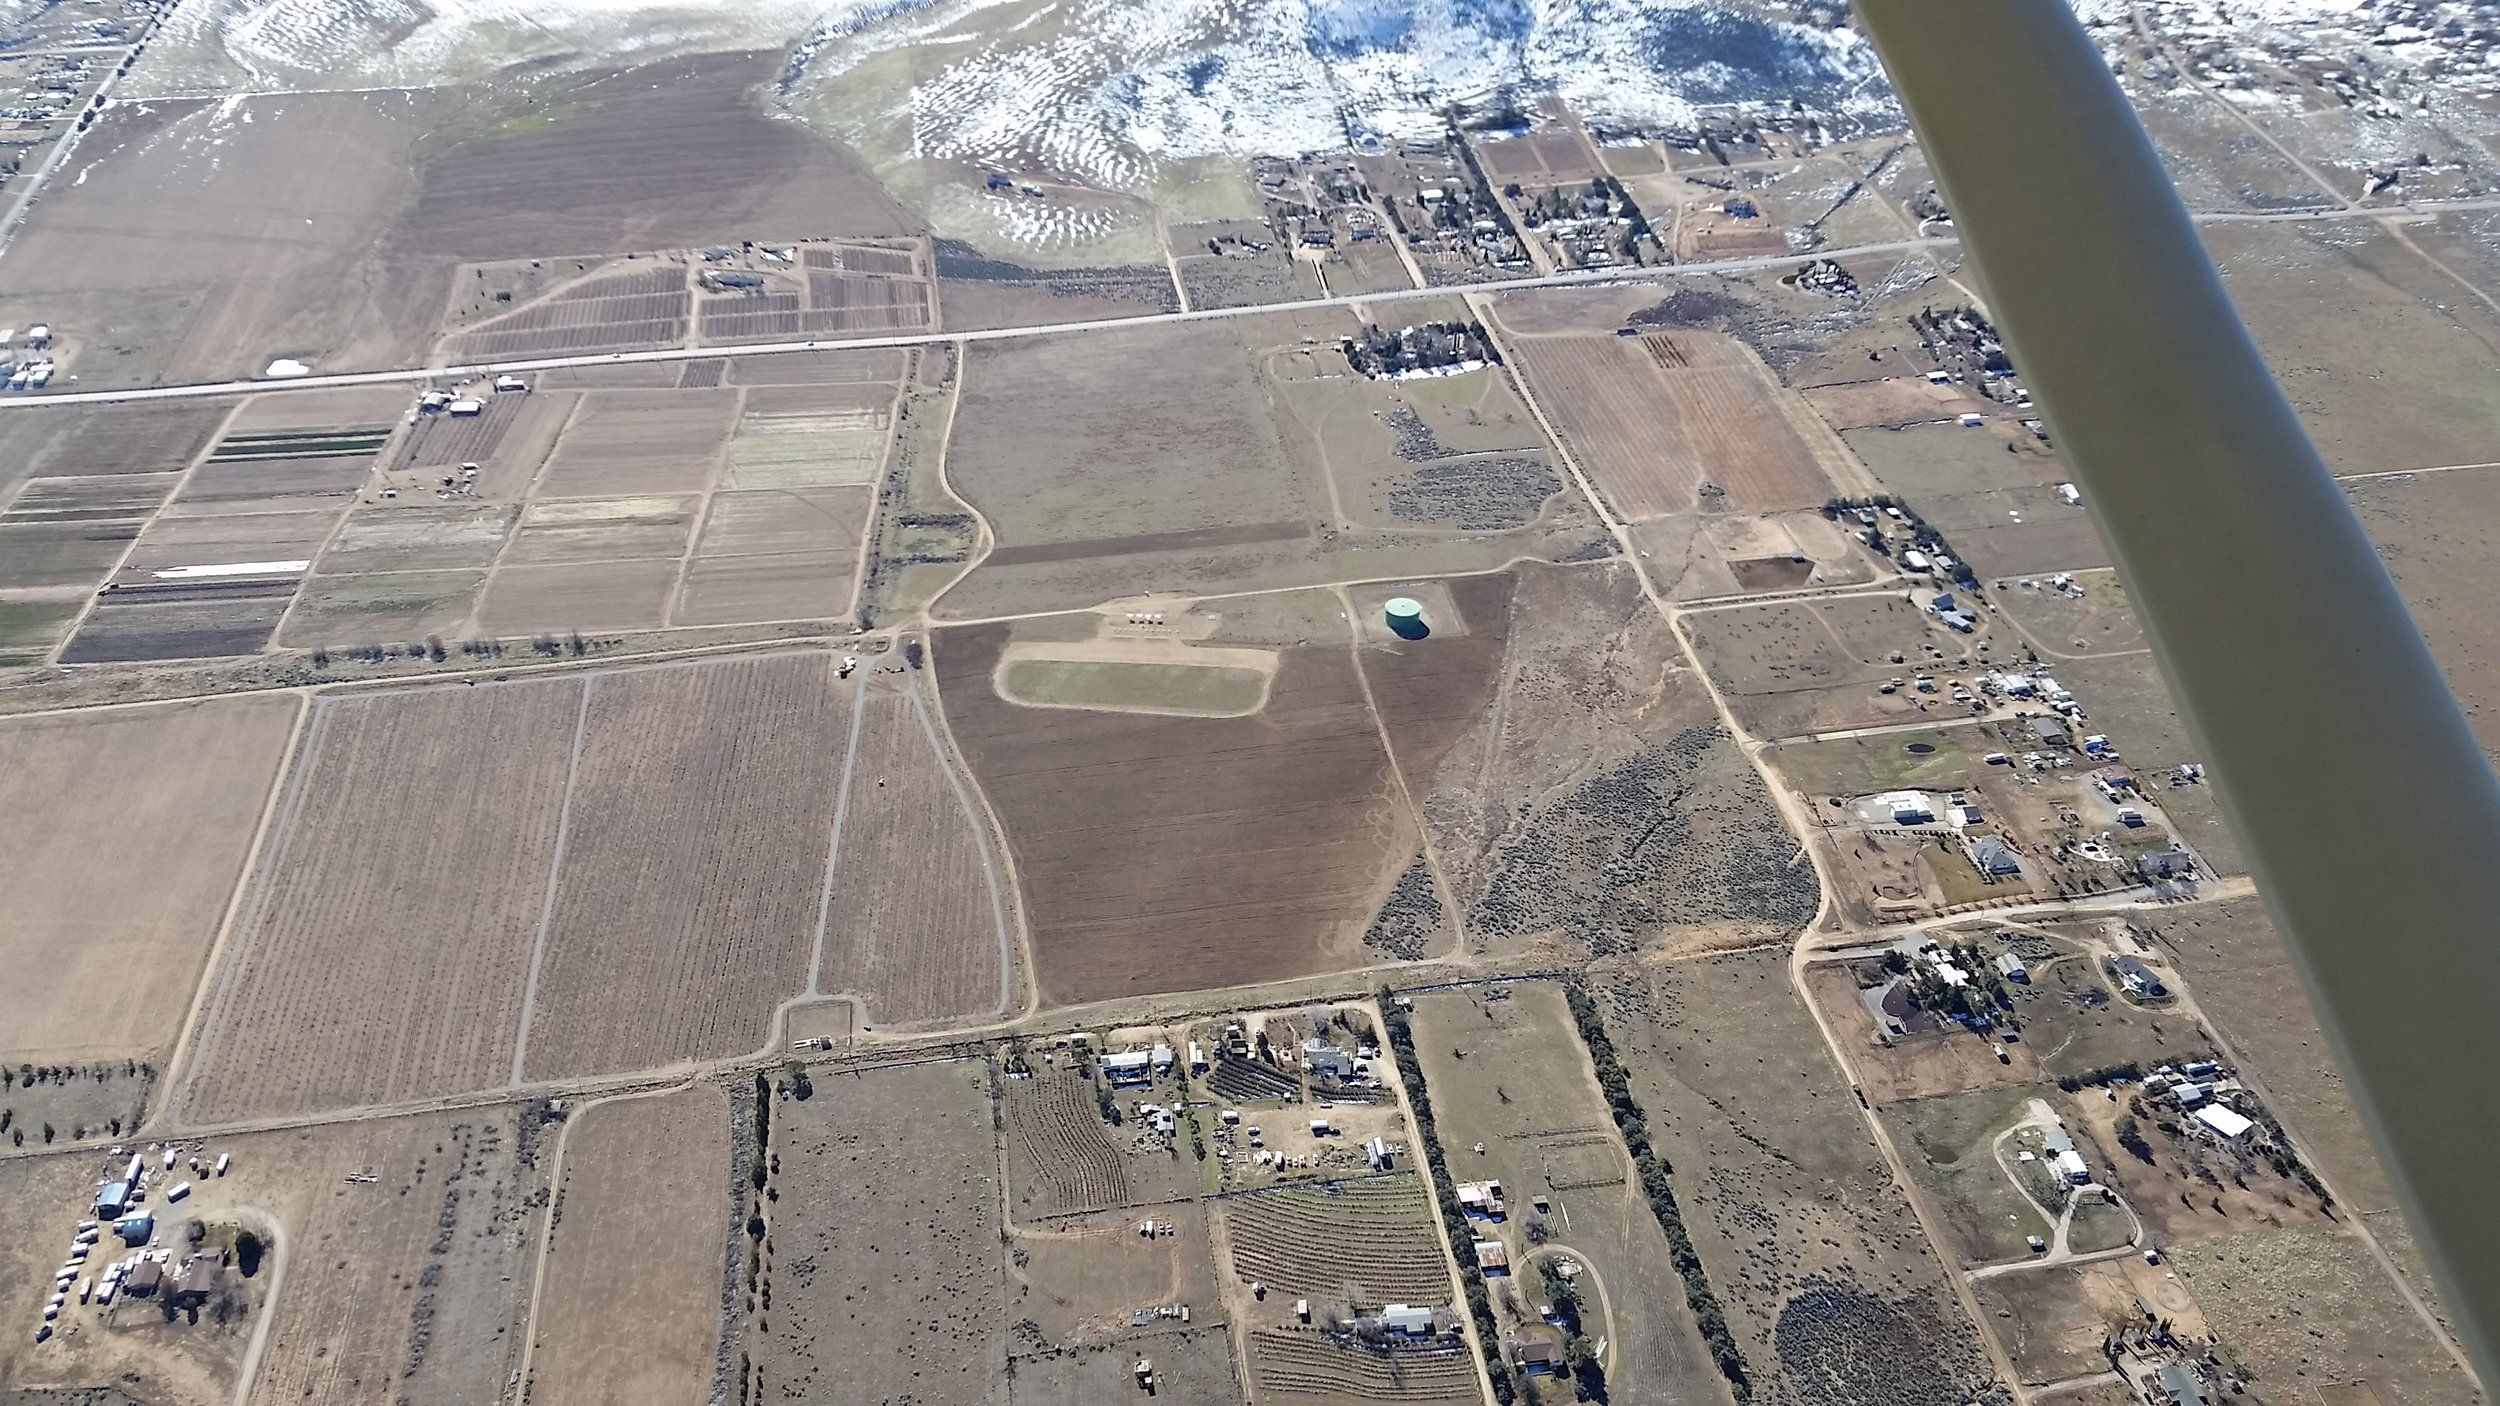 Flying field aerial shot January 18, 2017.